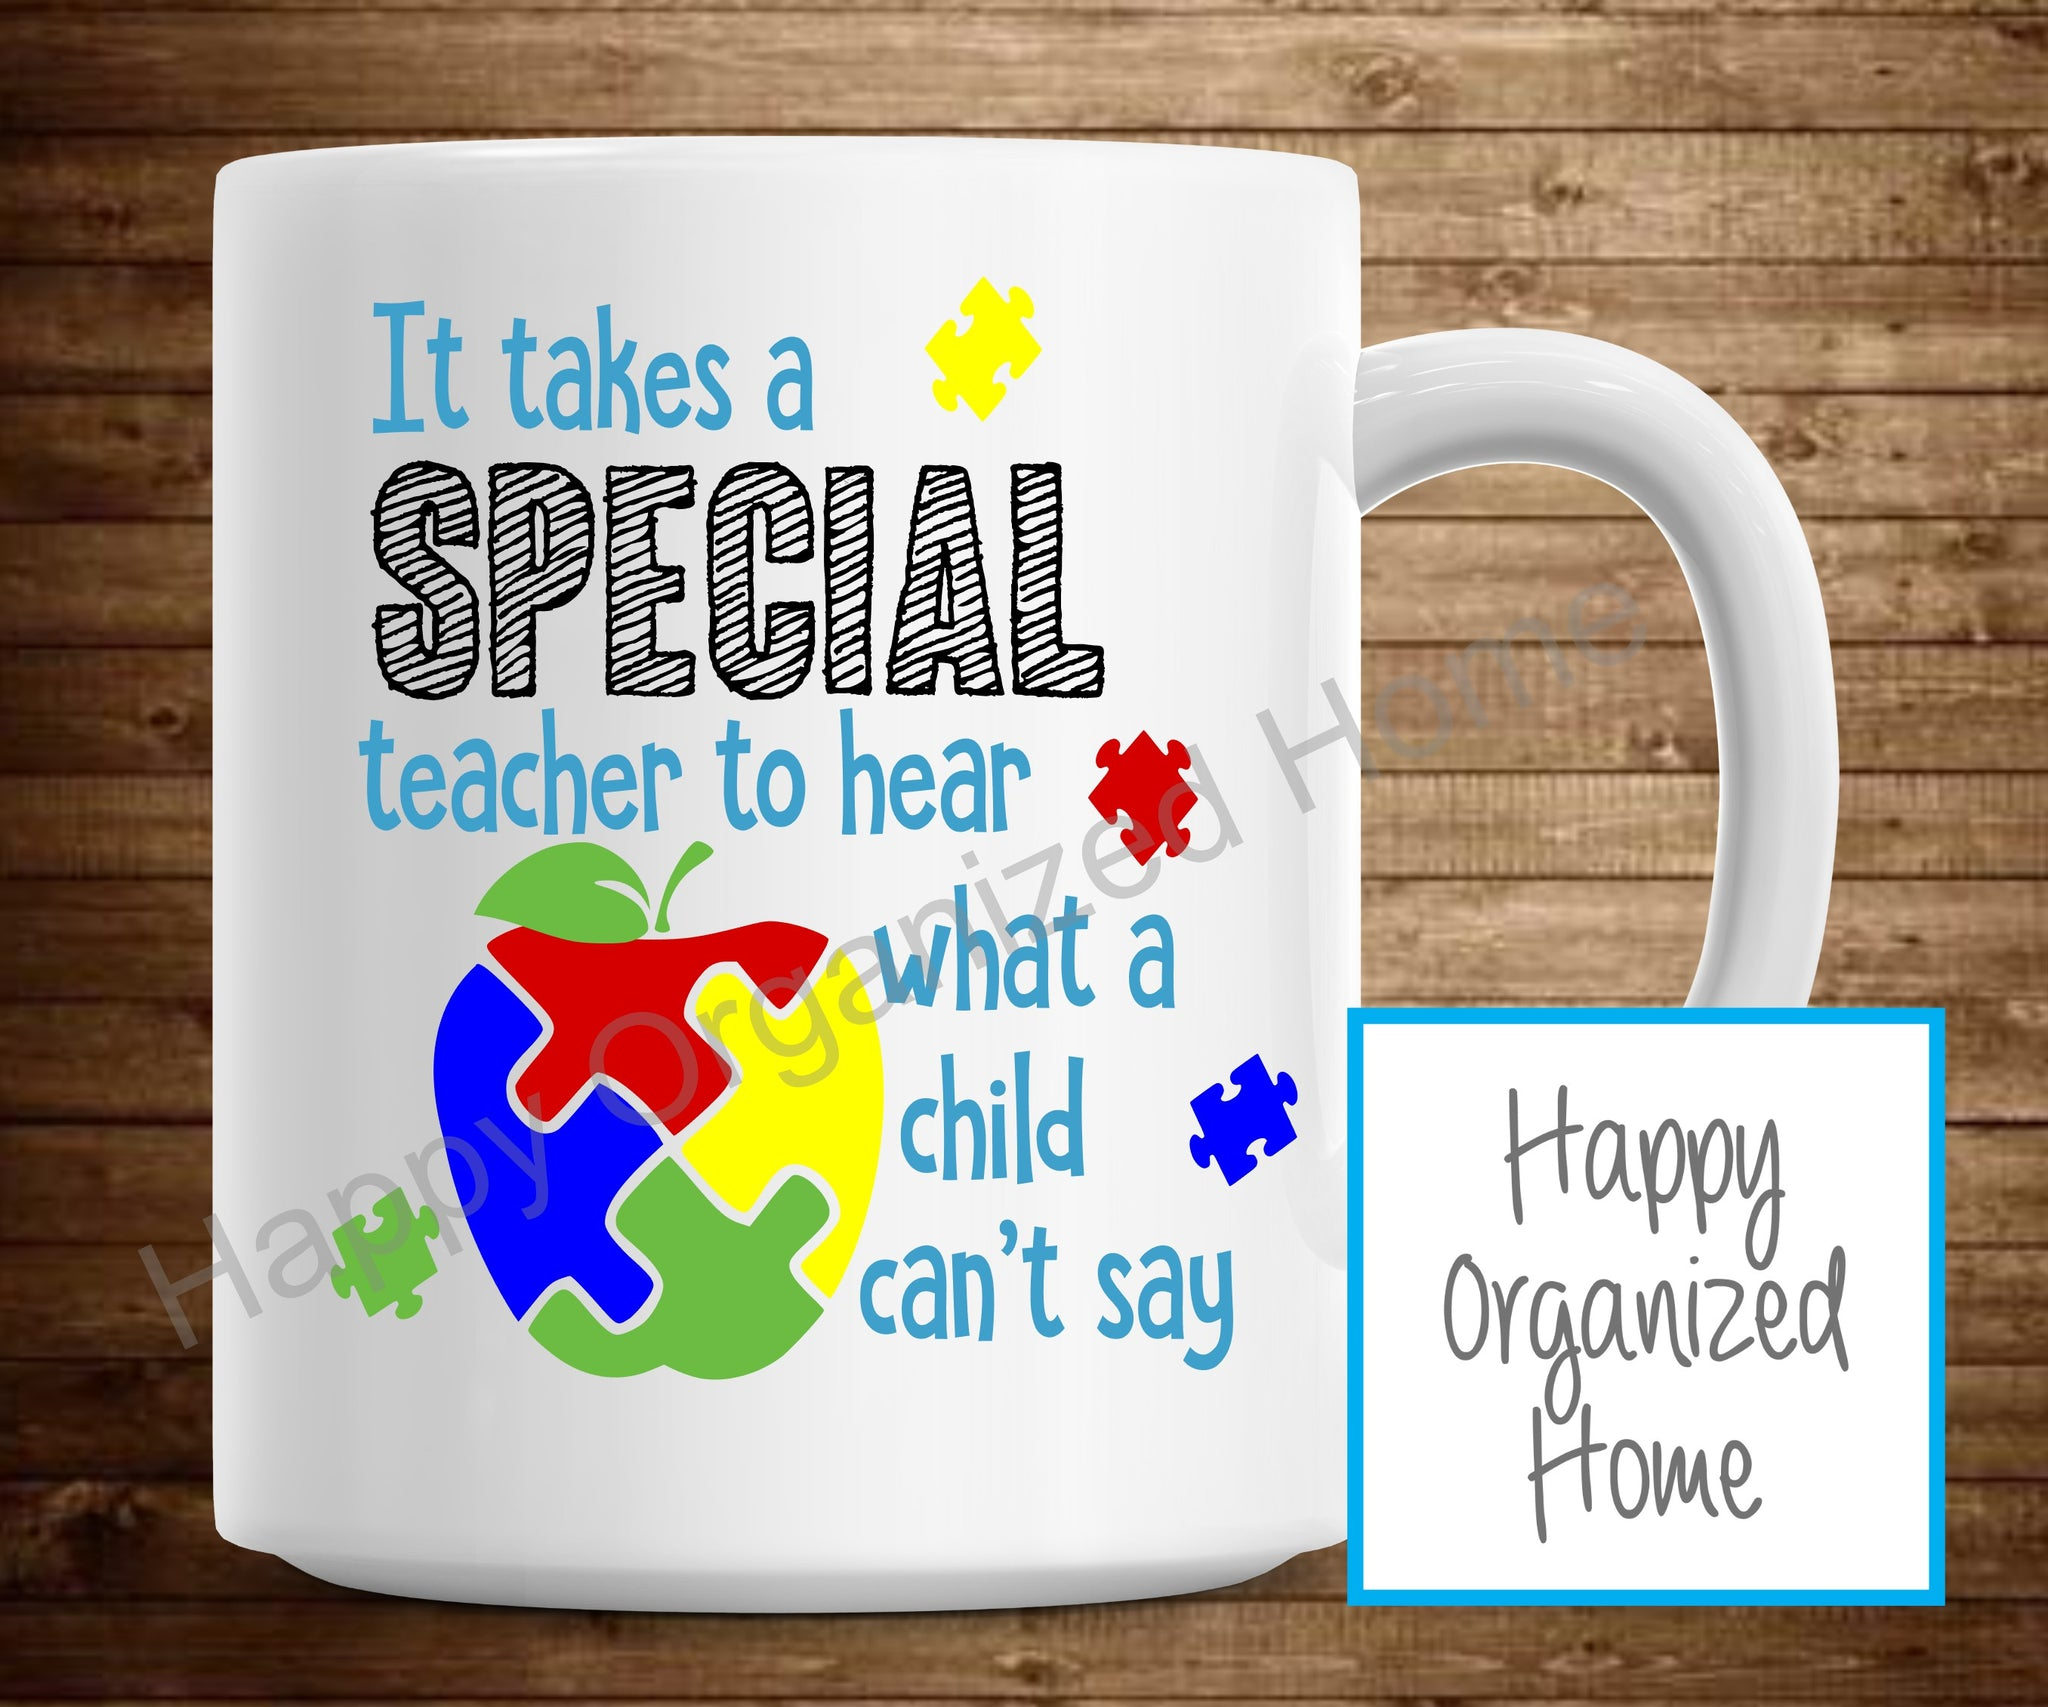 It takes a Special teacher to hear what a child can't say